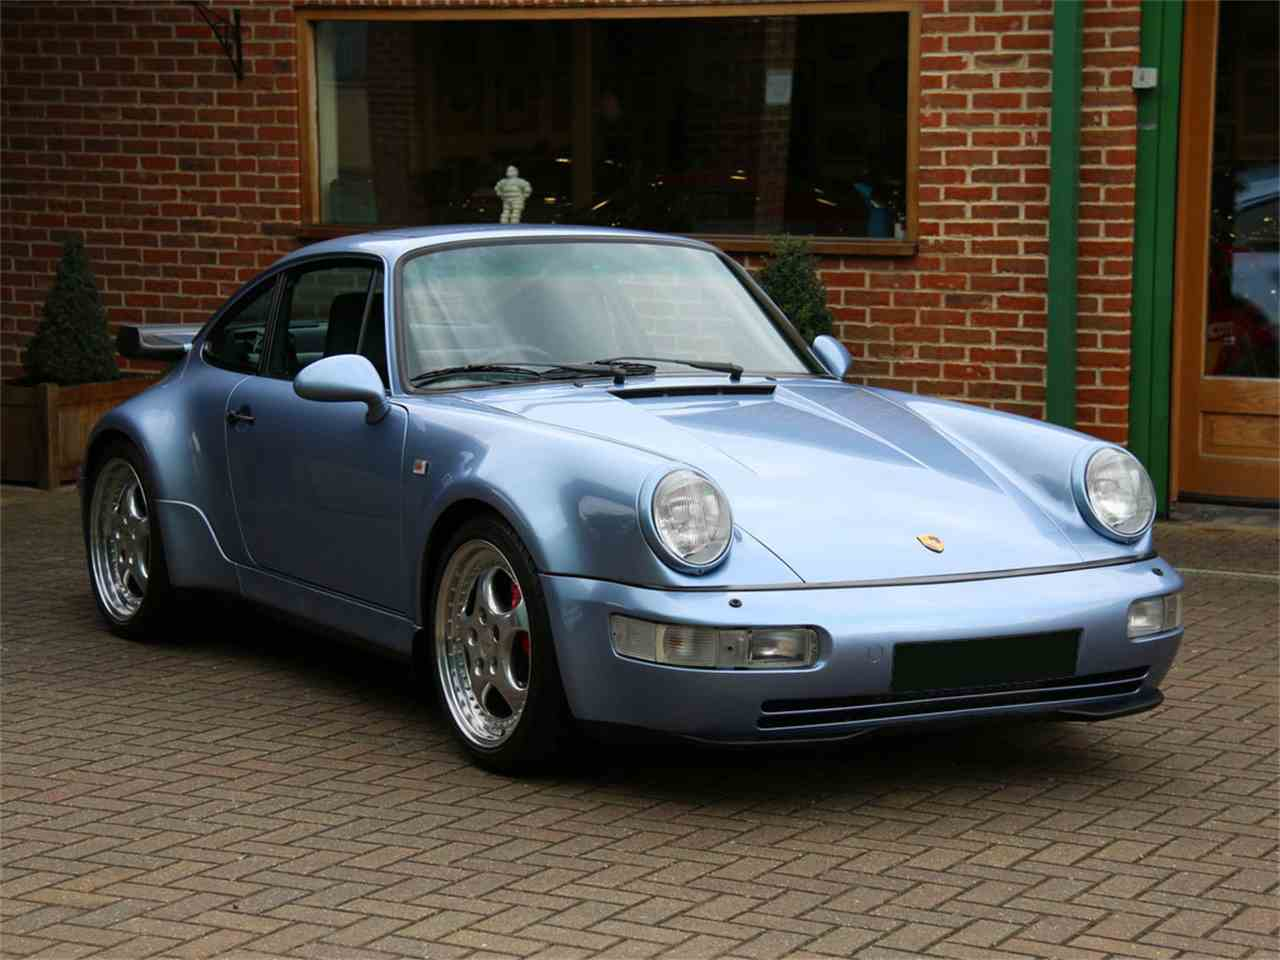 Large Picture of '94 Porsche 911 Type 964 Turbo 3.6 RHD Offered by JD Classics LTD - KH4U